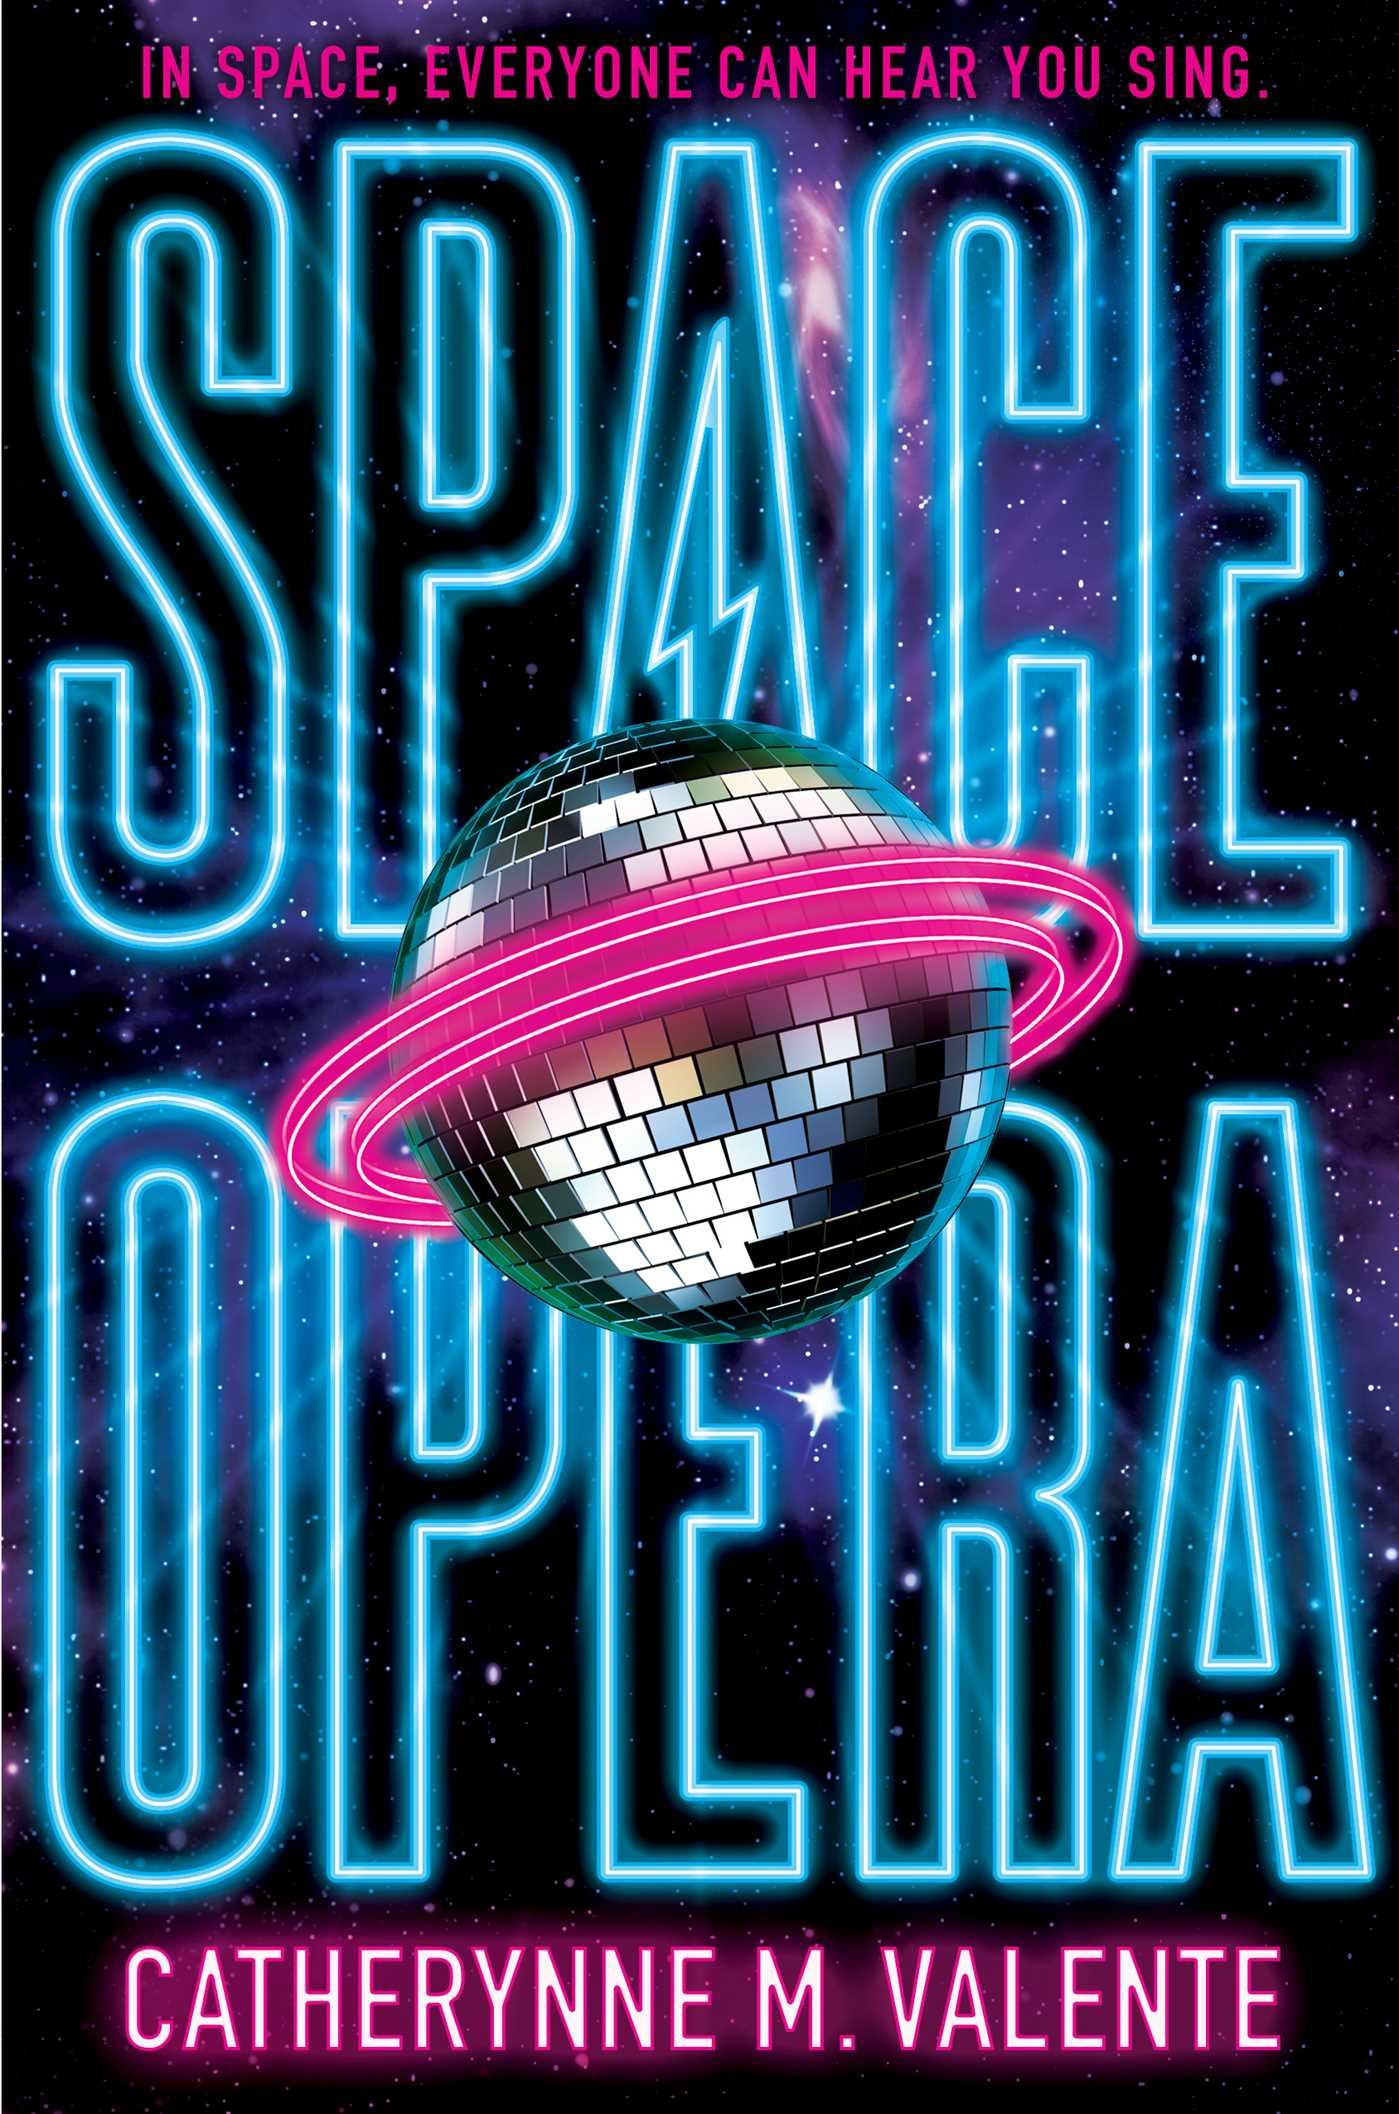 Catherynne M. Valente: Five Things I Learned Writing Space Opera